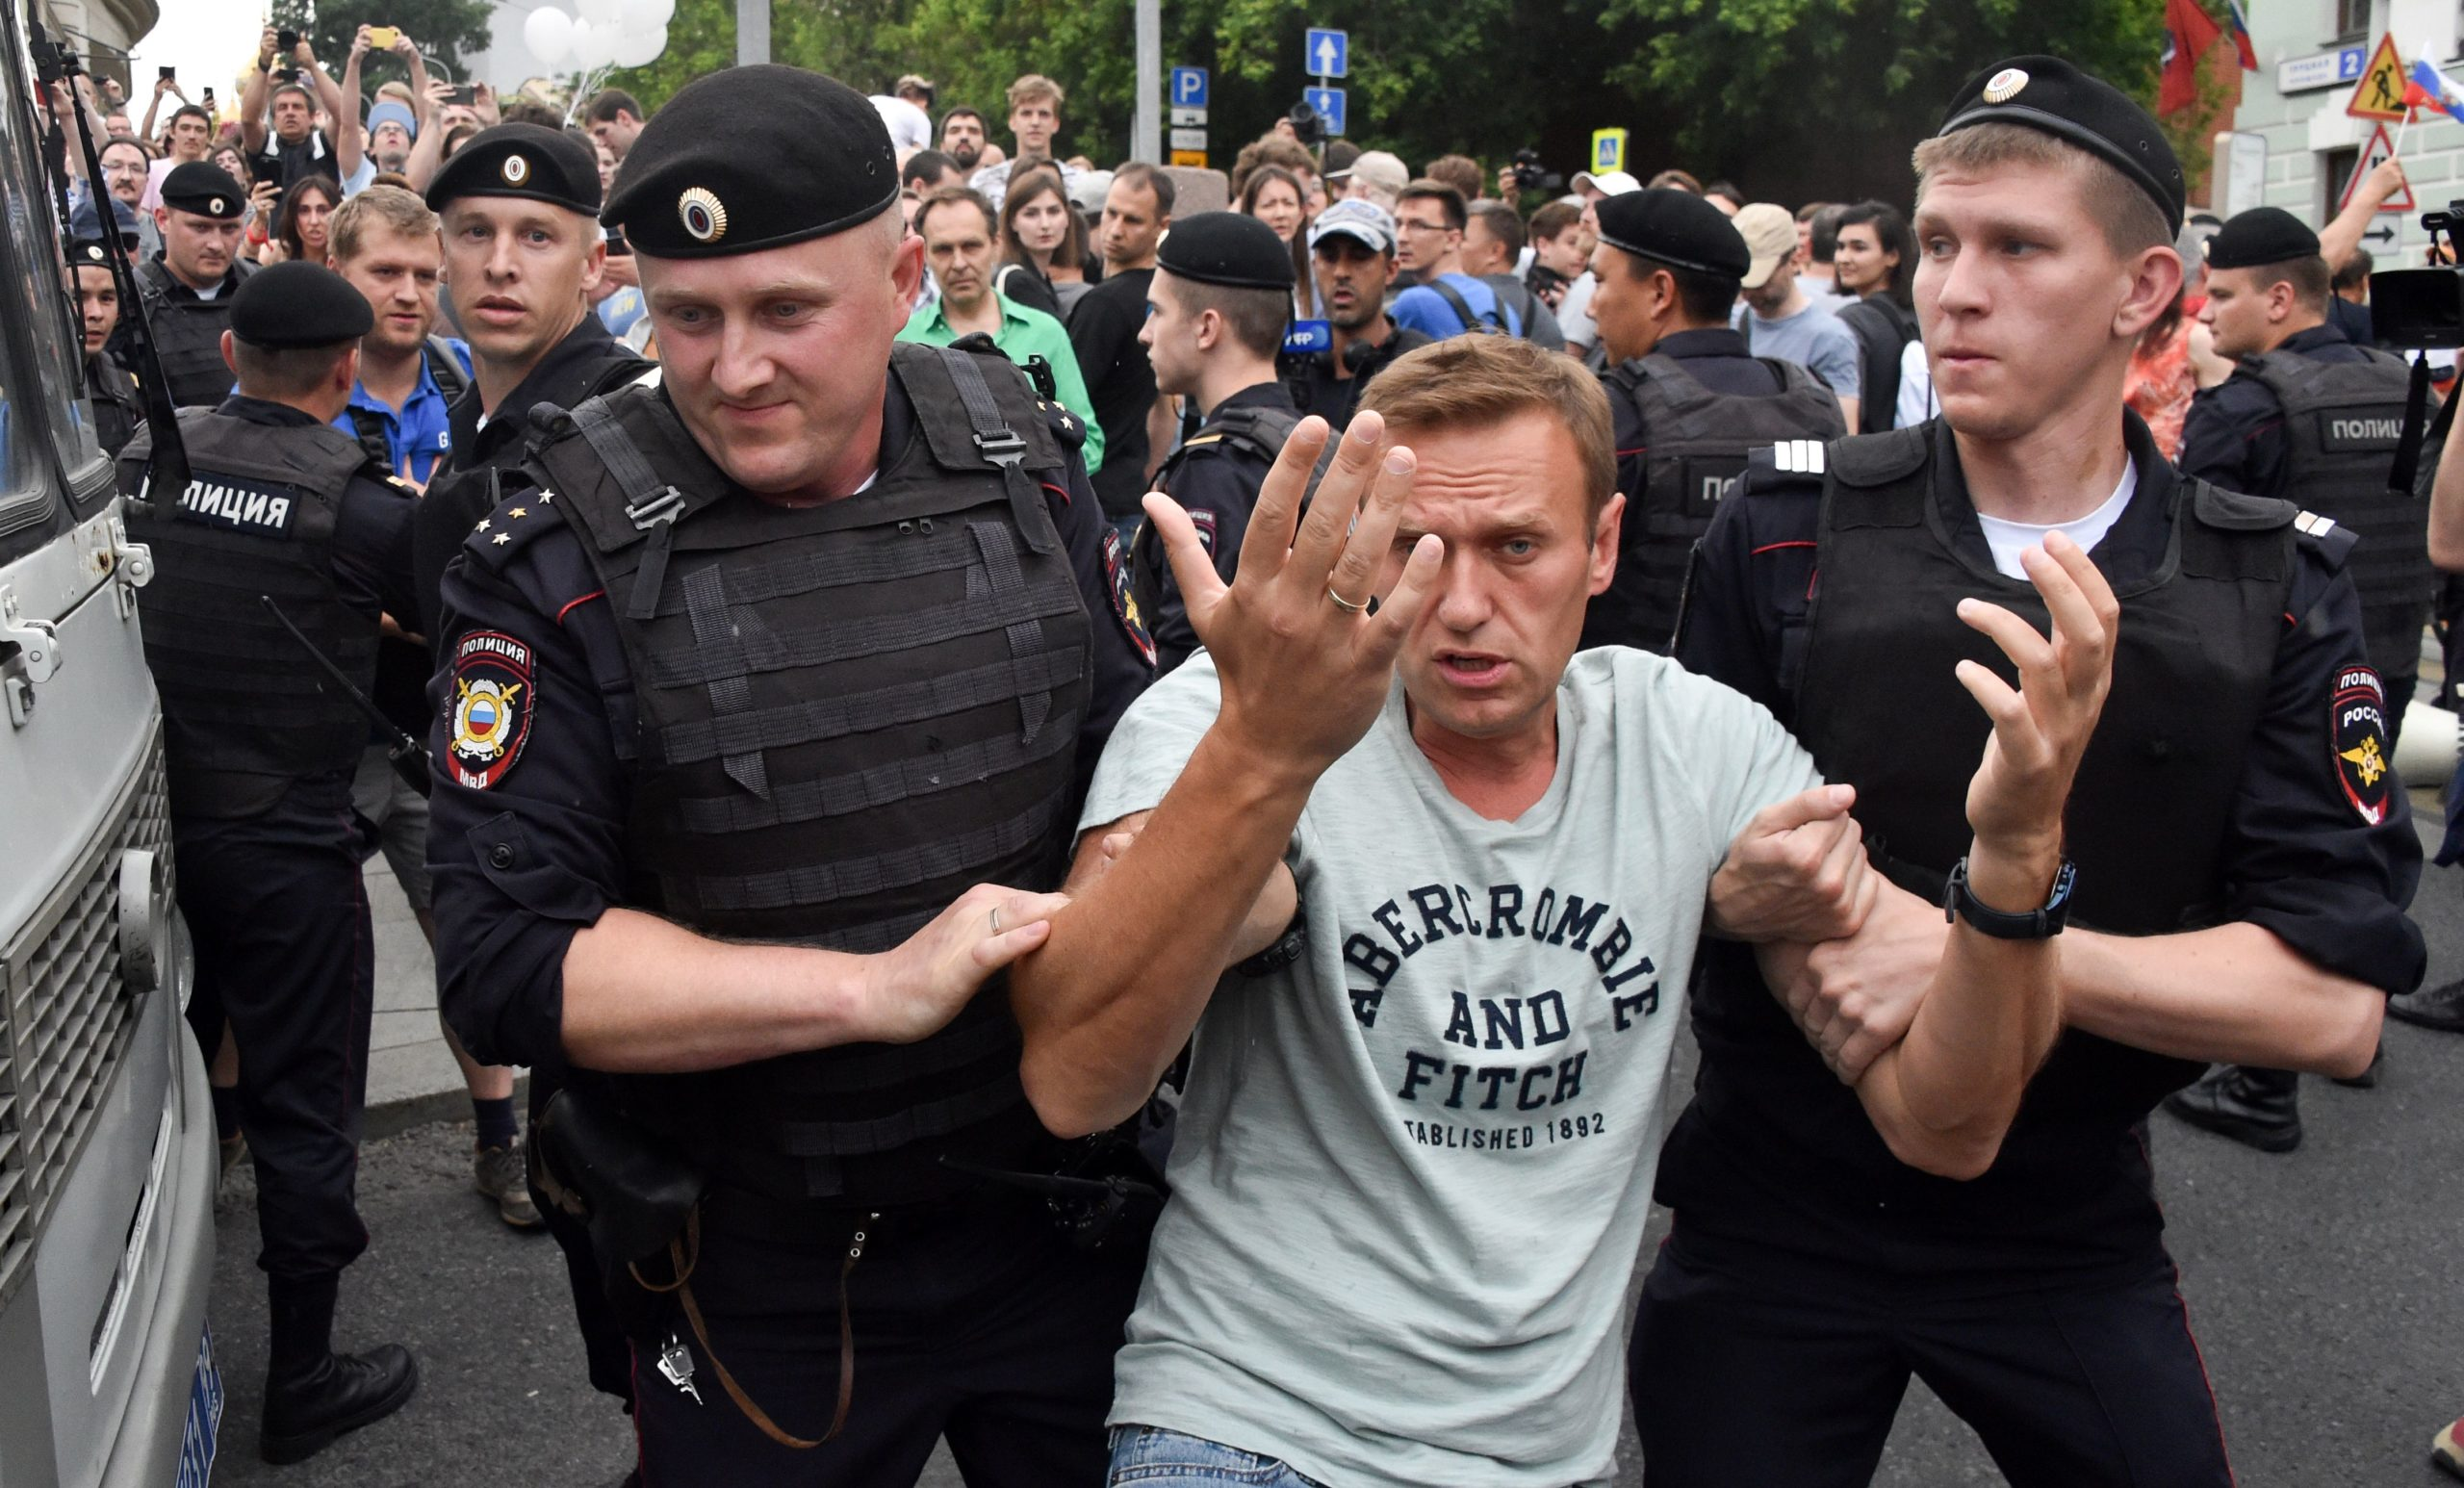 Opposition leader Alexei Navalny is detained by Russian police officers during a march to protest against the alleged impunity of law enforcement agencies in central Moscow in 2019. (Vasily Maximov/AFP via Getty Images)